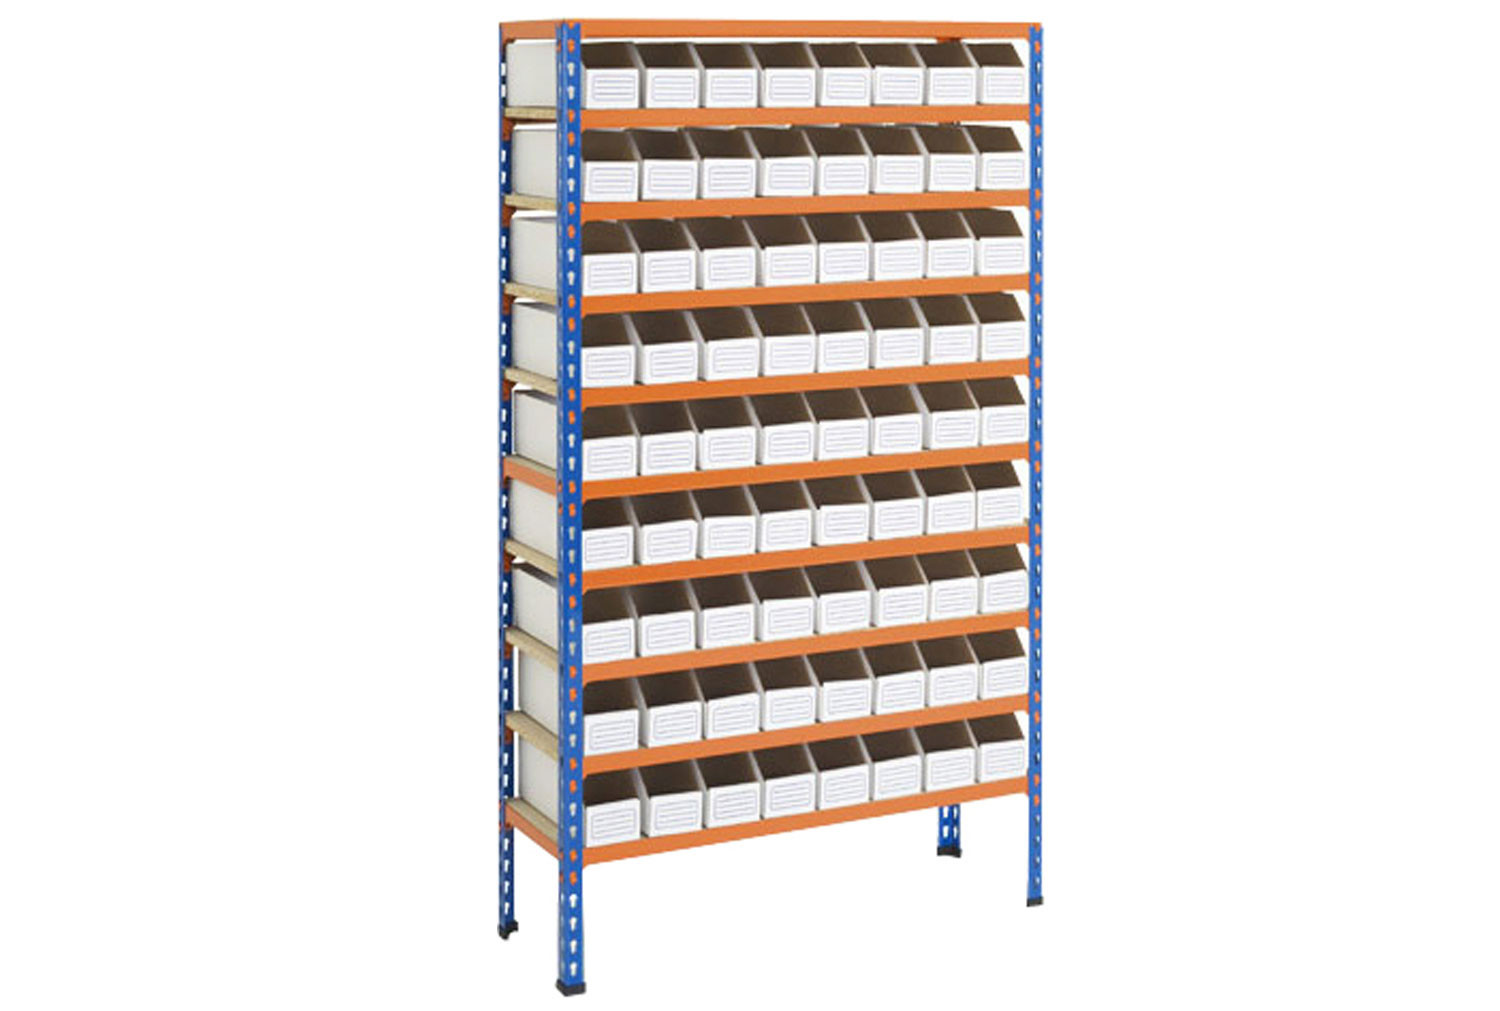 Rapid 2 shelving with 72 cardboard picking bins